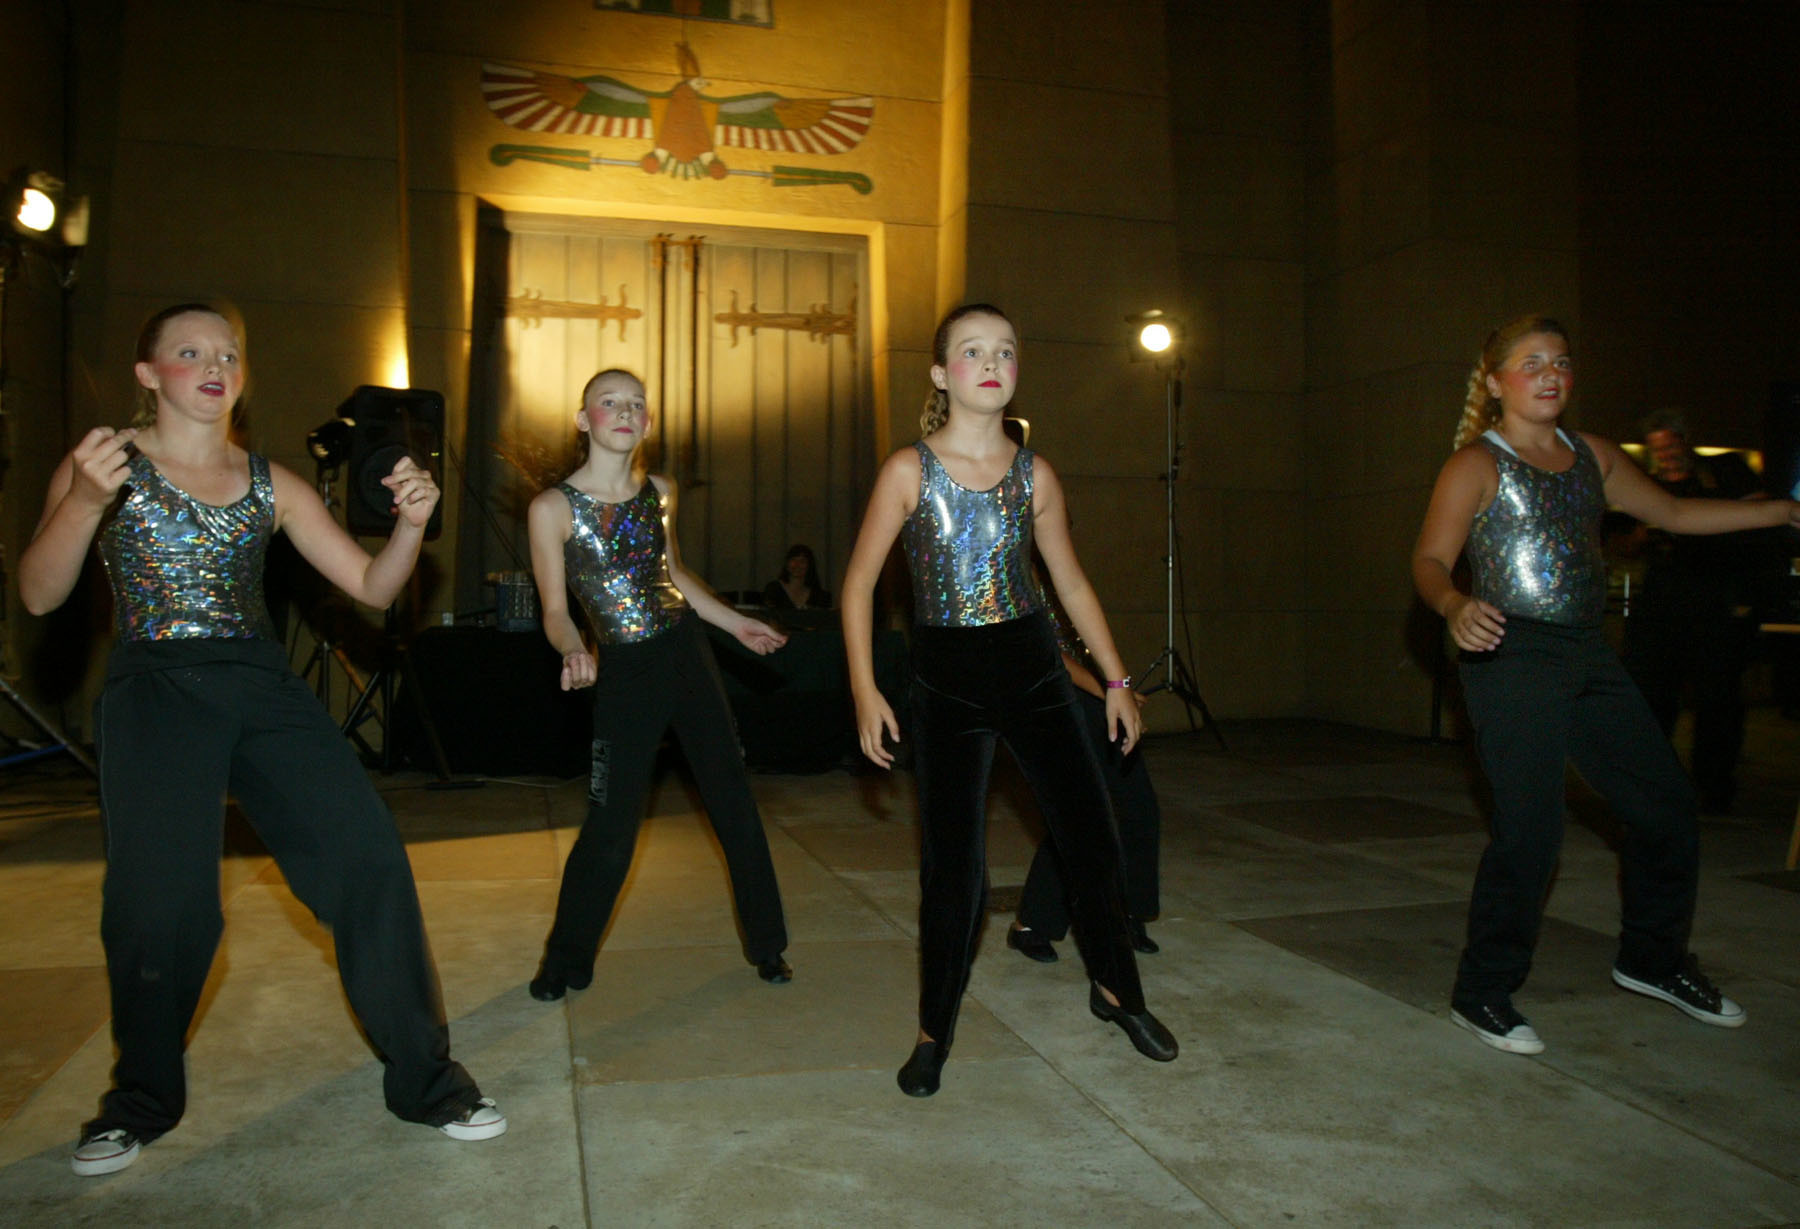 Girls in the dance group